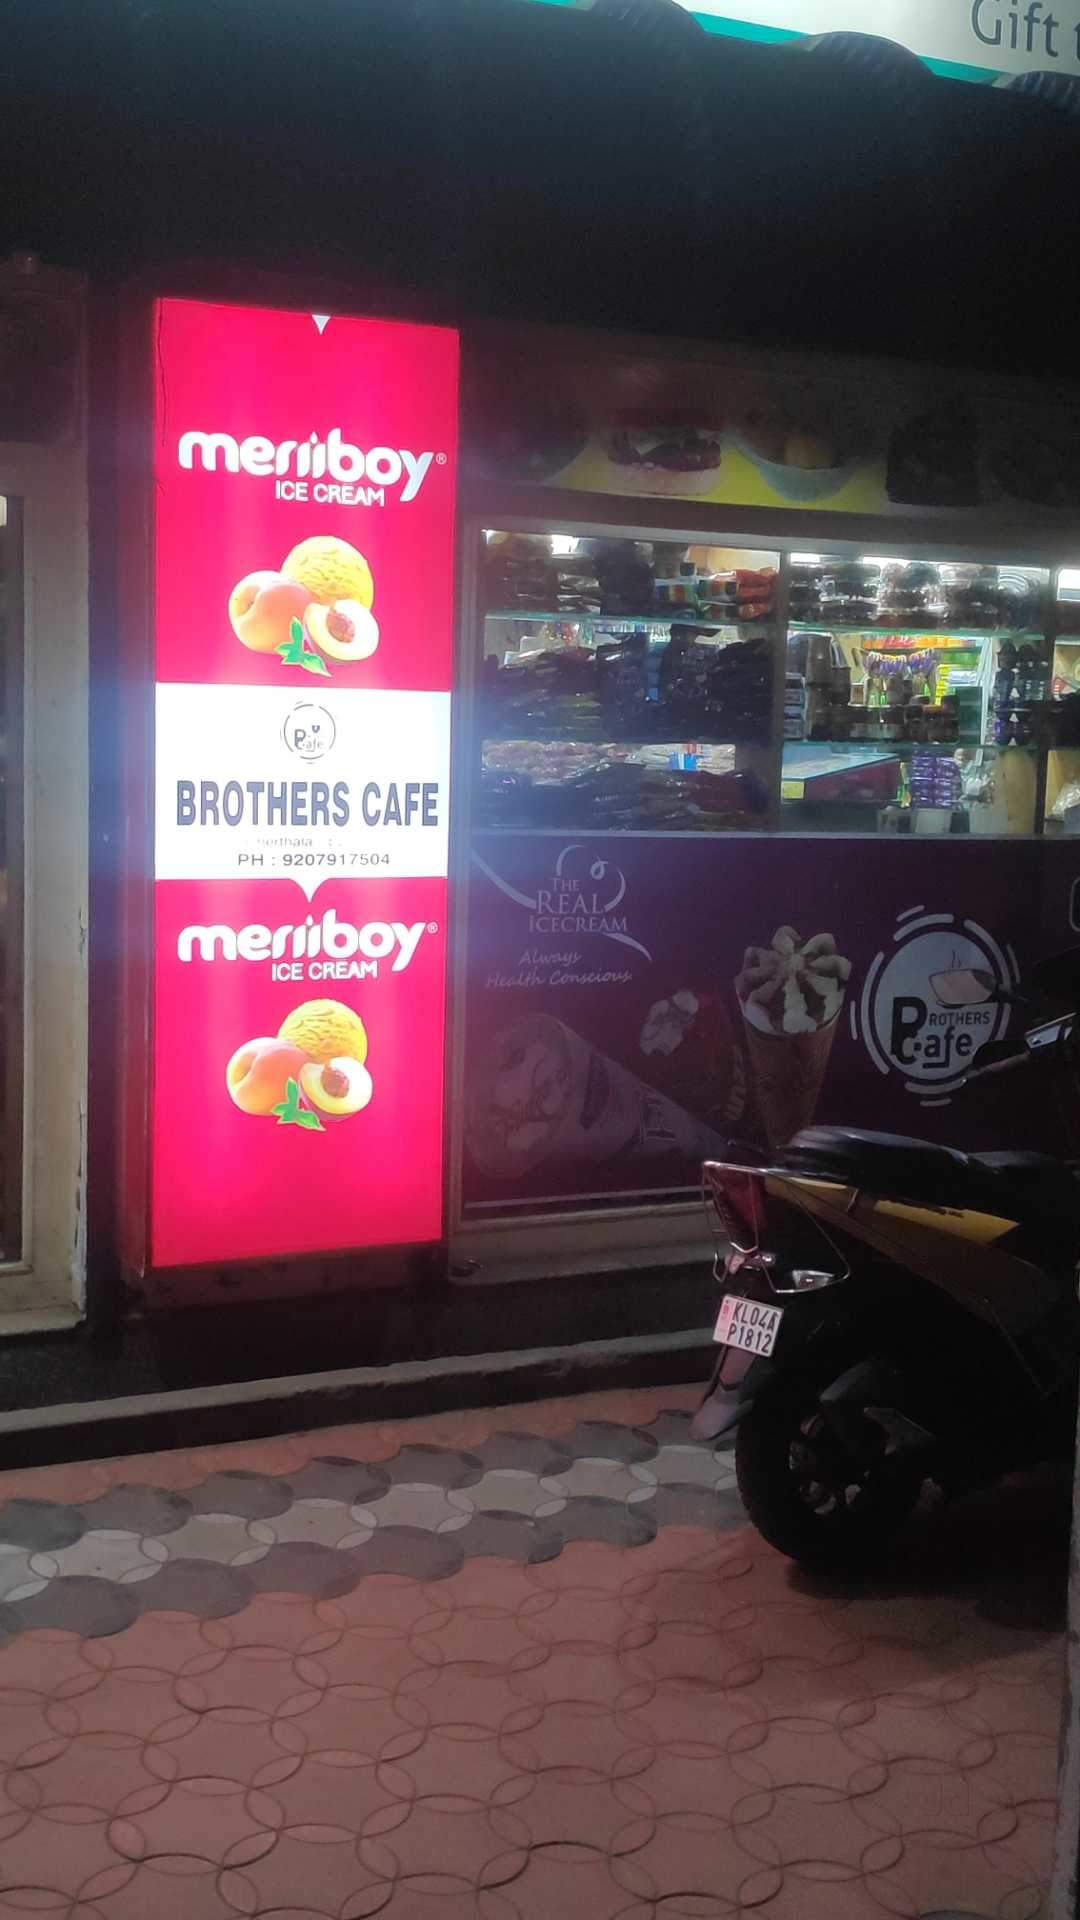 Brothers Cafe, Backery & Cafeteria,  service in Cherthala, Alappuzha